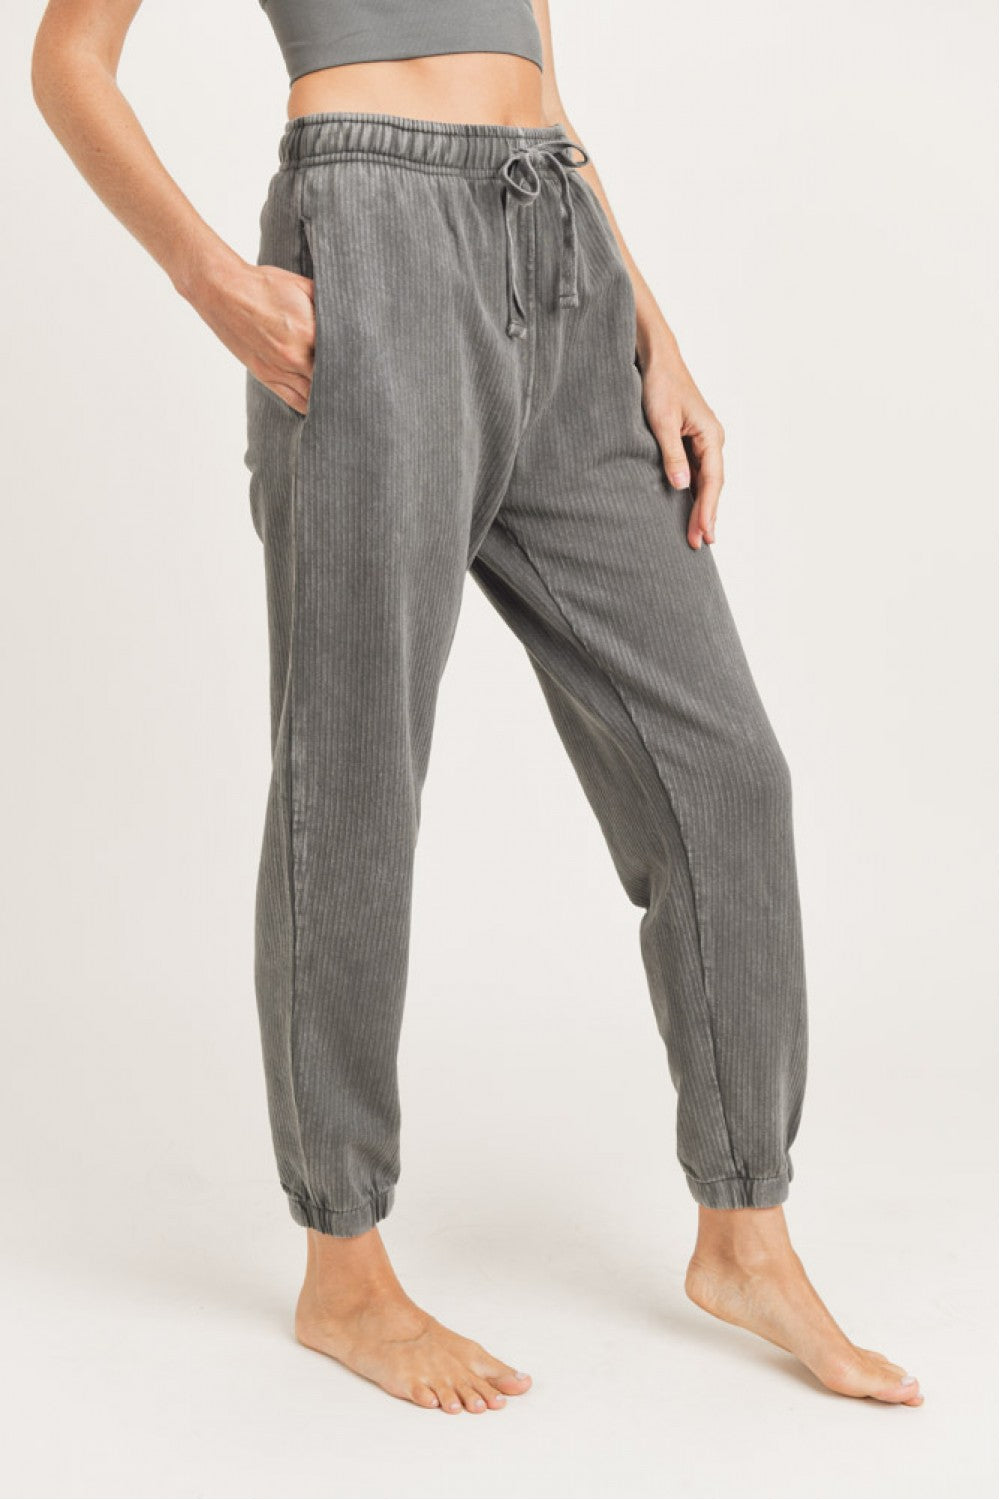 Mineral-Washed Ribbed Billow Cuffed Joggers (Gun Metal)